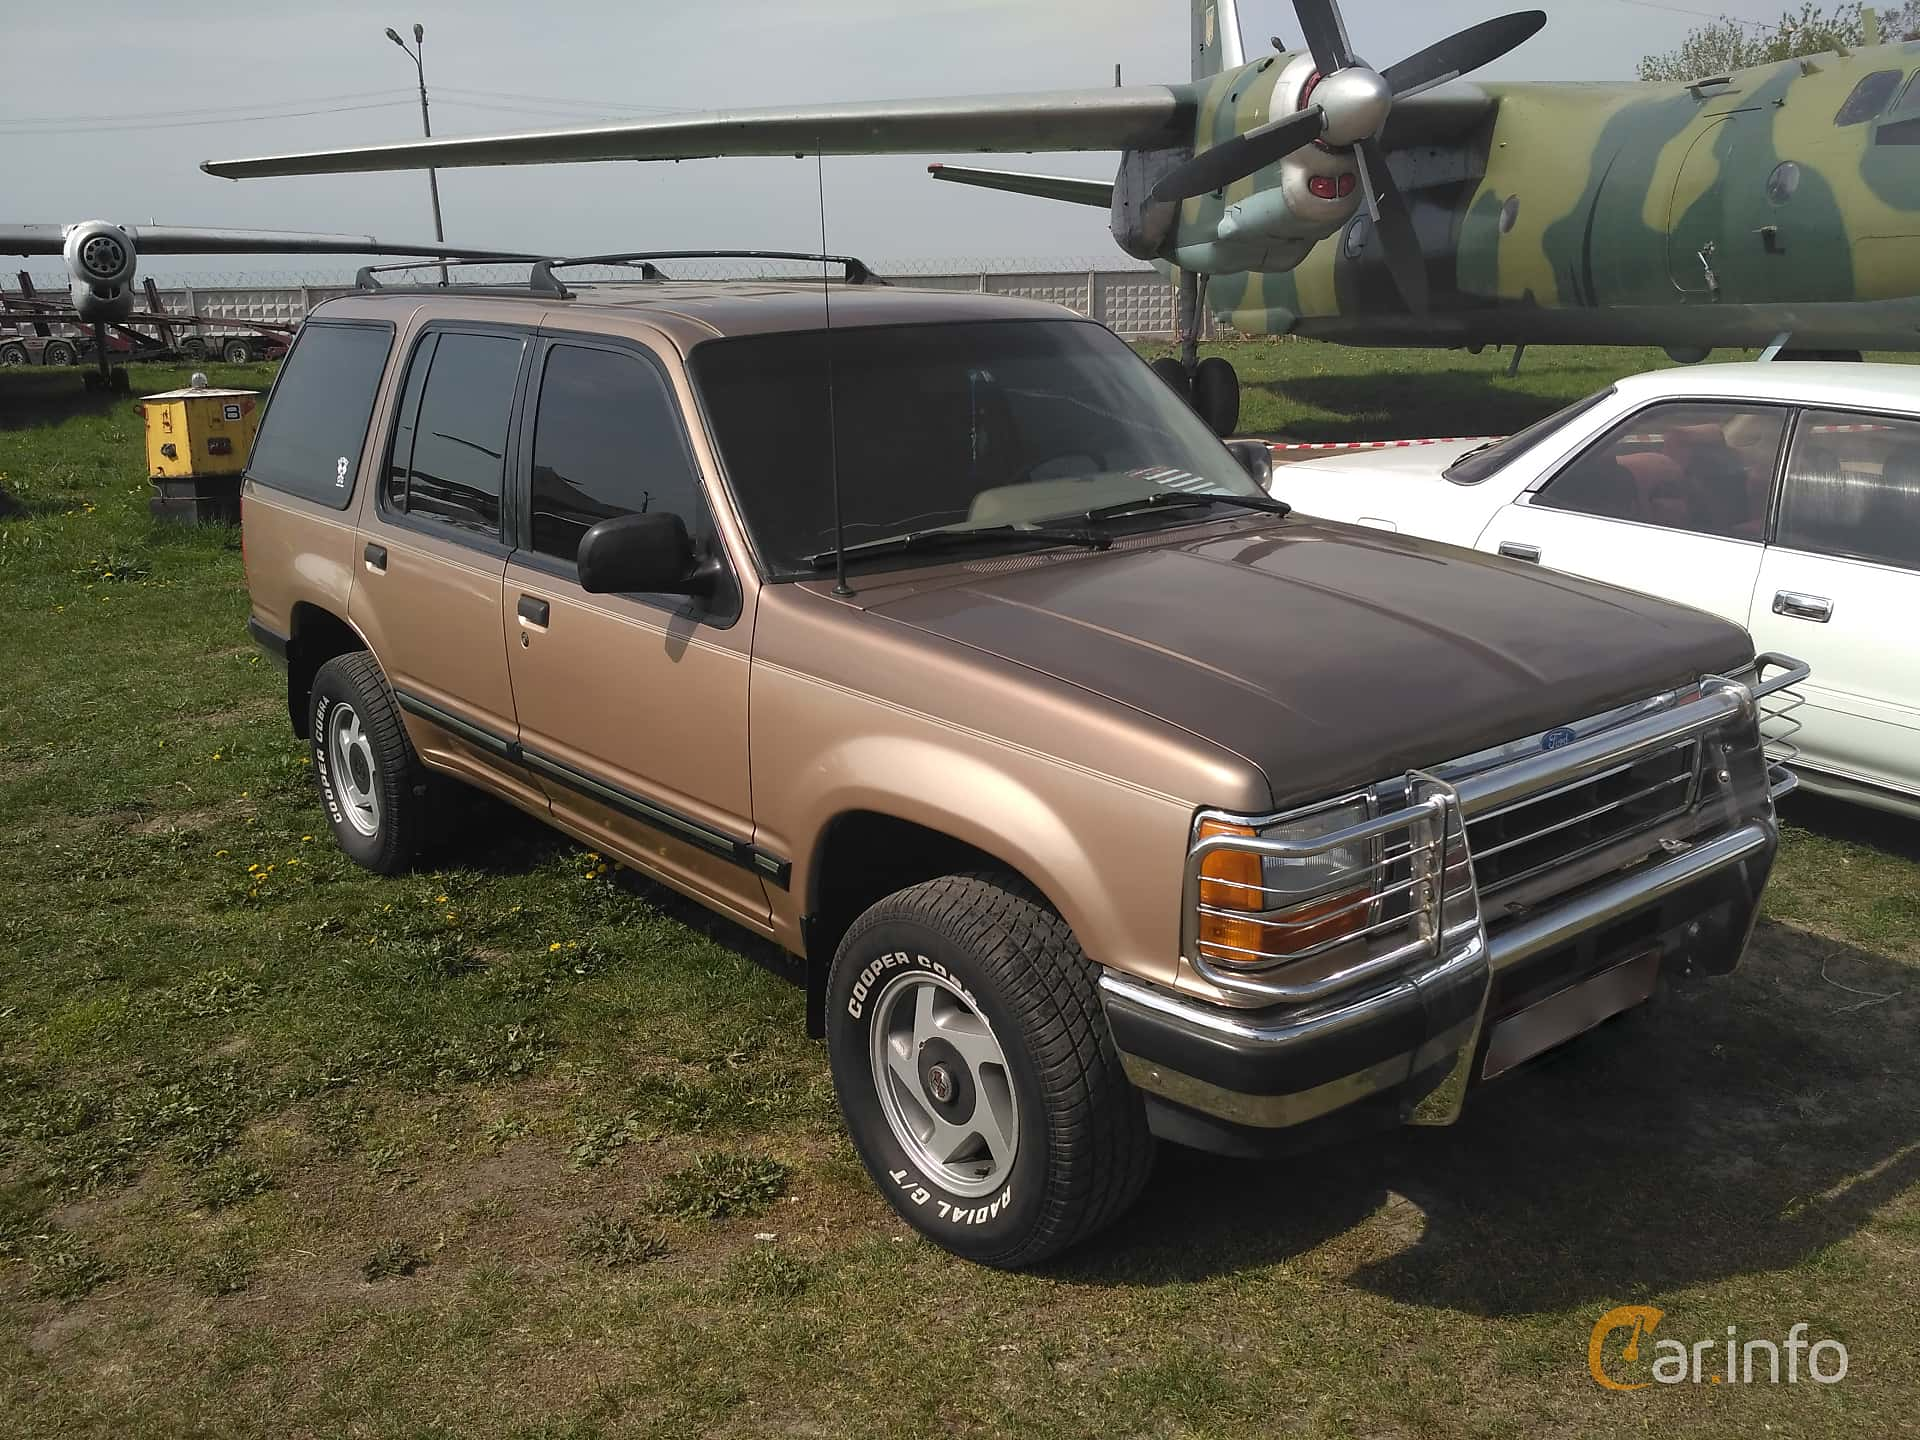 Ford Explorer 4.0 V6 4WD Manual, 147hp, 1992 at Old Car Land no.1 2017